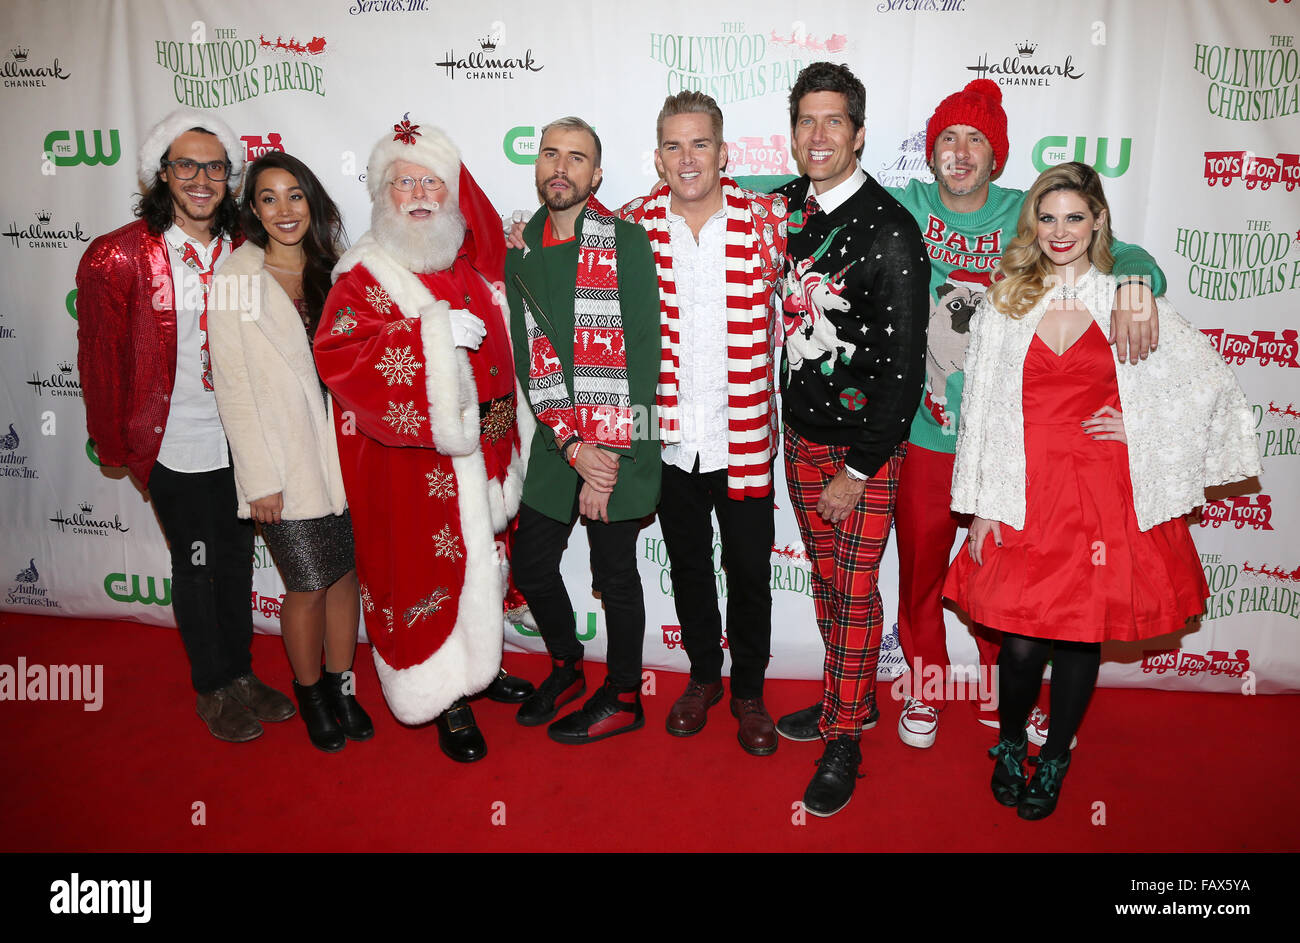 The Christmas Parade Hallmark.2015 Hollywood Christmas Parade Featuring Alex Kinsey Sierra Stock